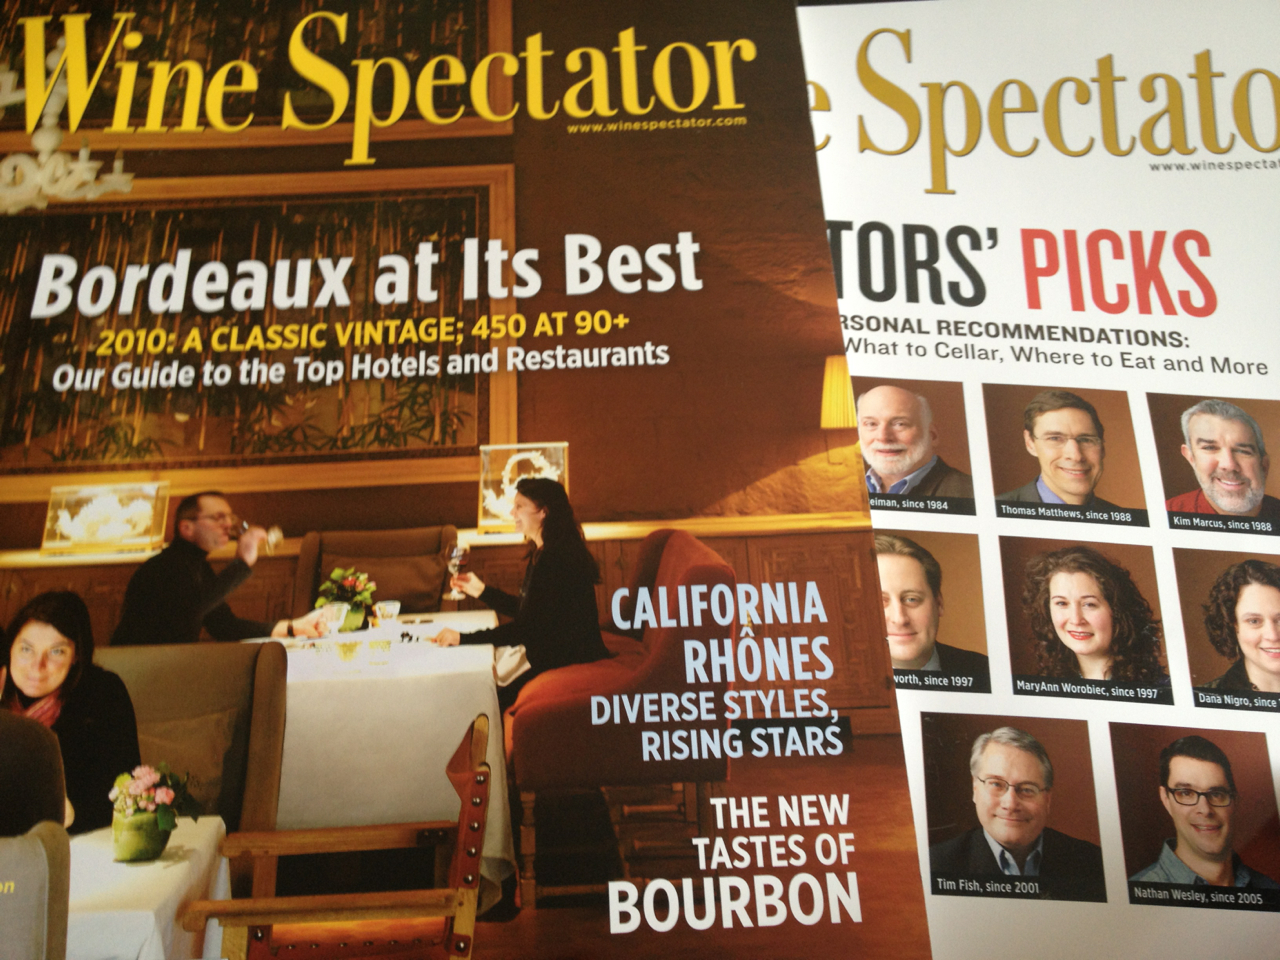 So excited for the latest Wine Spectator on the 2010 Bordeaux vintage. It's one of my favorite regions. Time to pick out some wines to cellar.